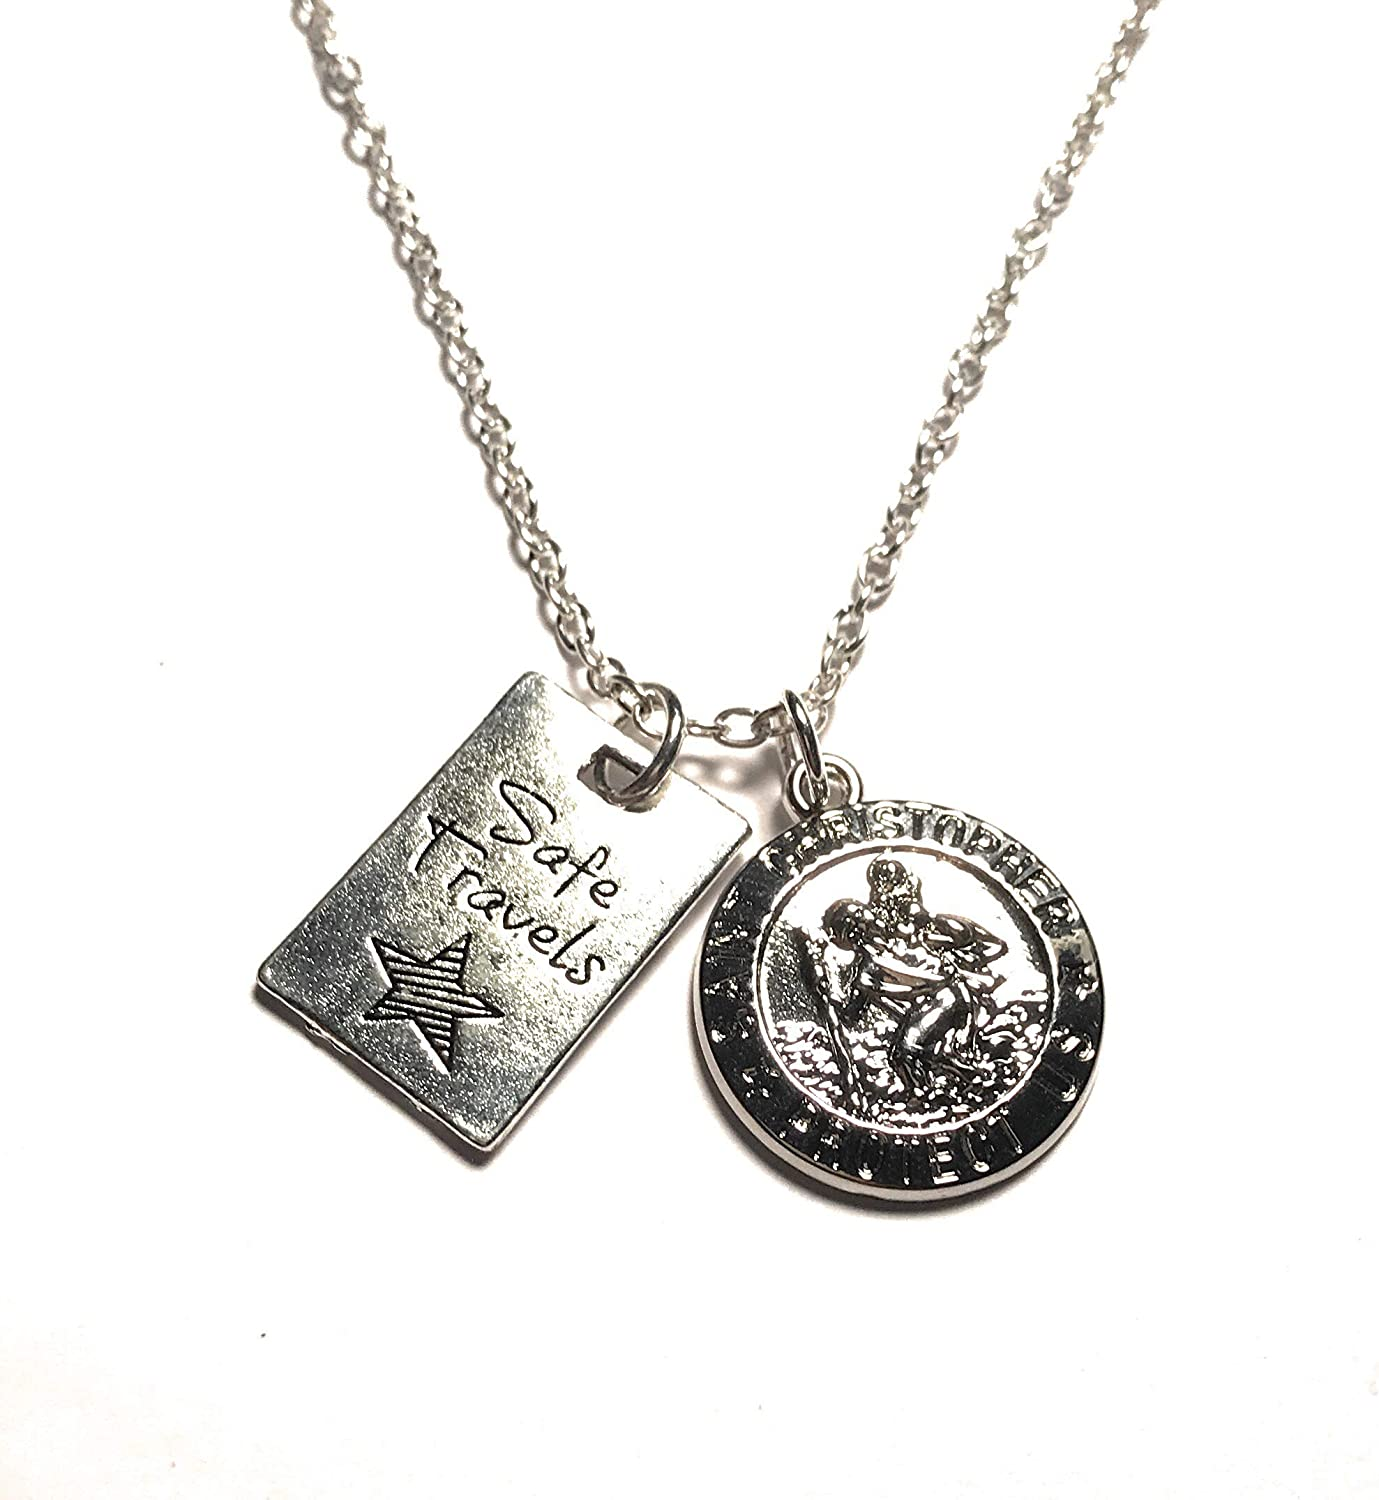 St Christopher Protect Us Gold Tone Charm Pendant Choker Necklace w Black Cord